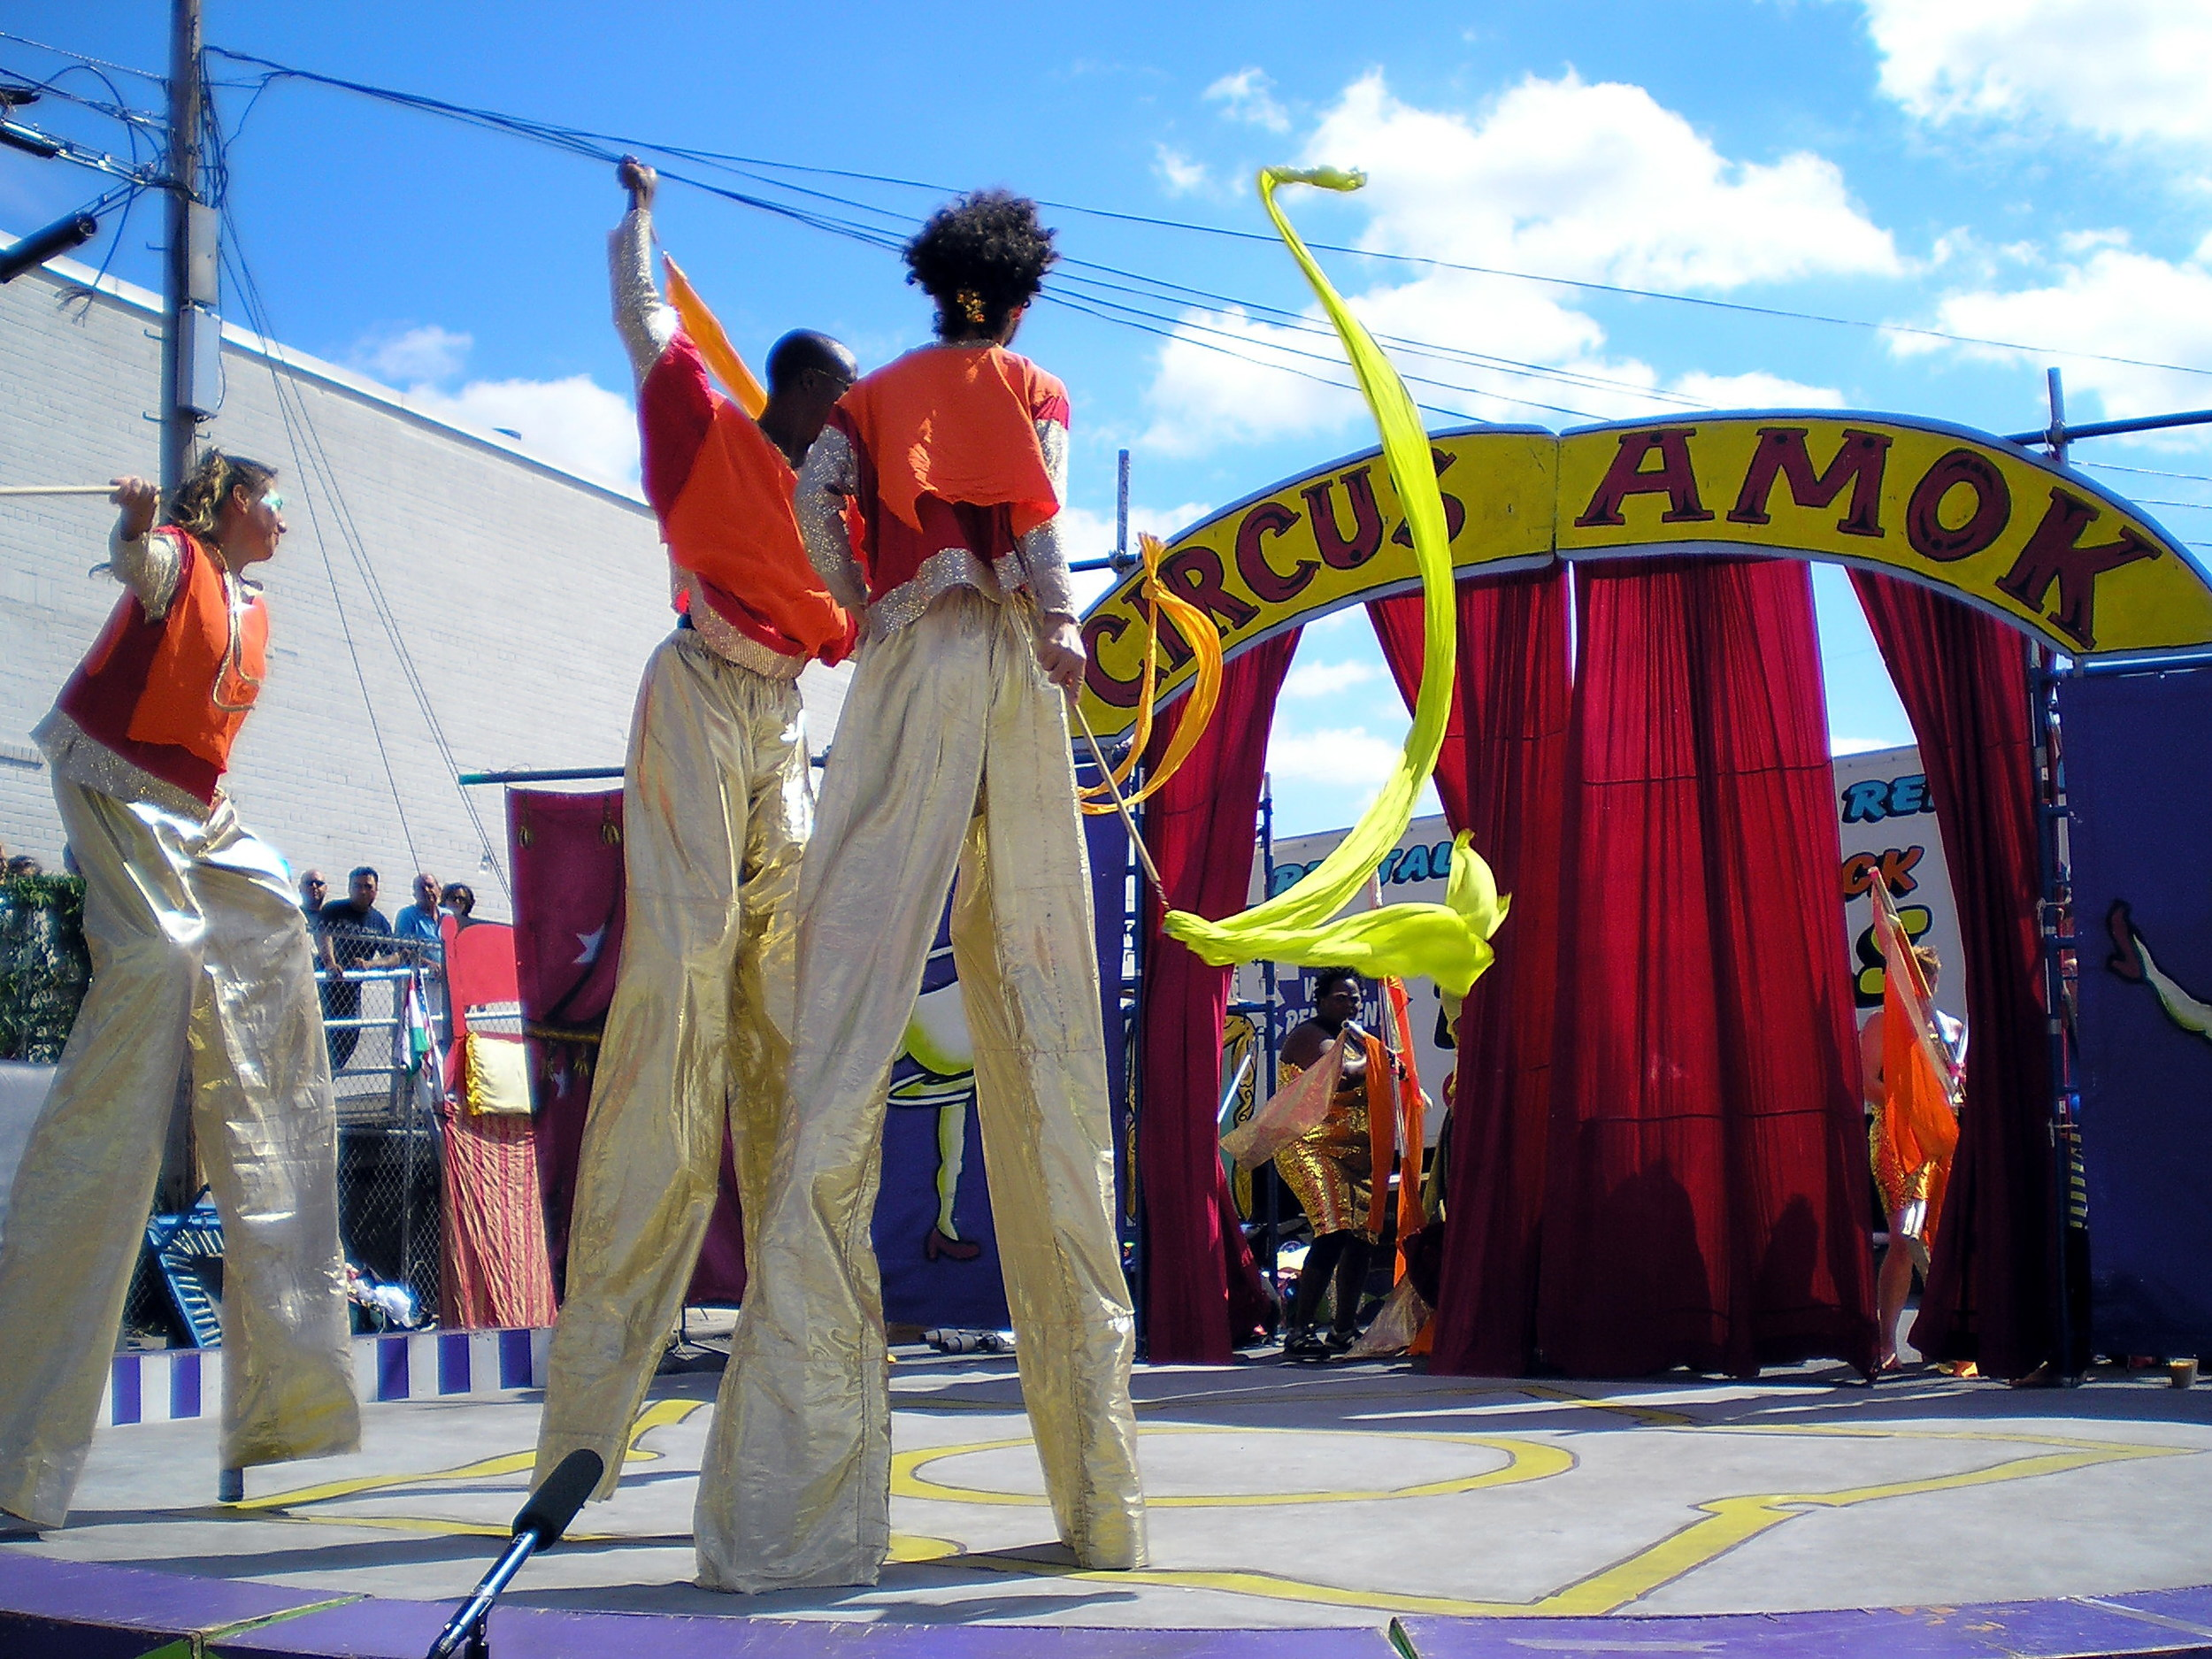 Stilt_Walkers_at_Circus_Amok_by_David_Shankbone.jpg